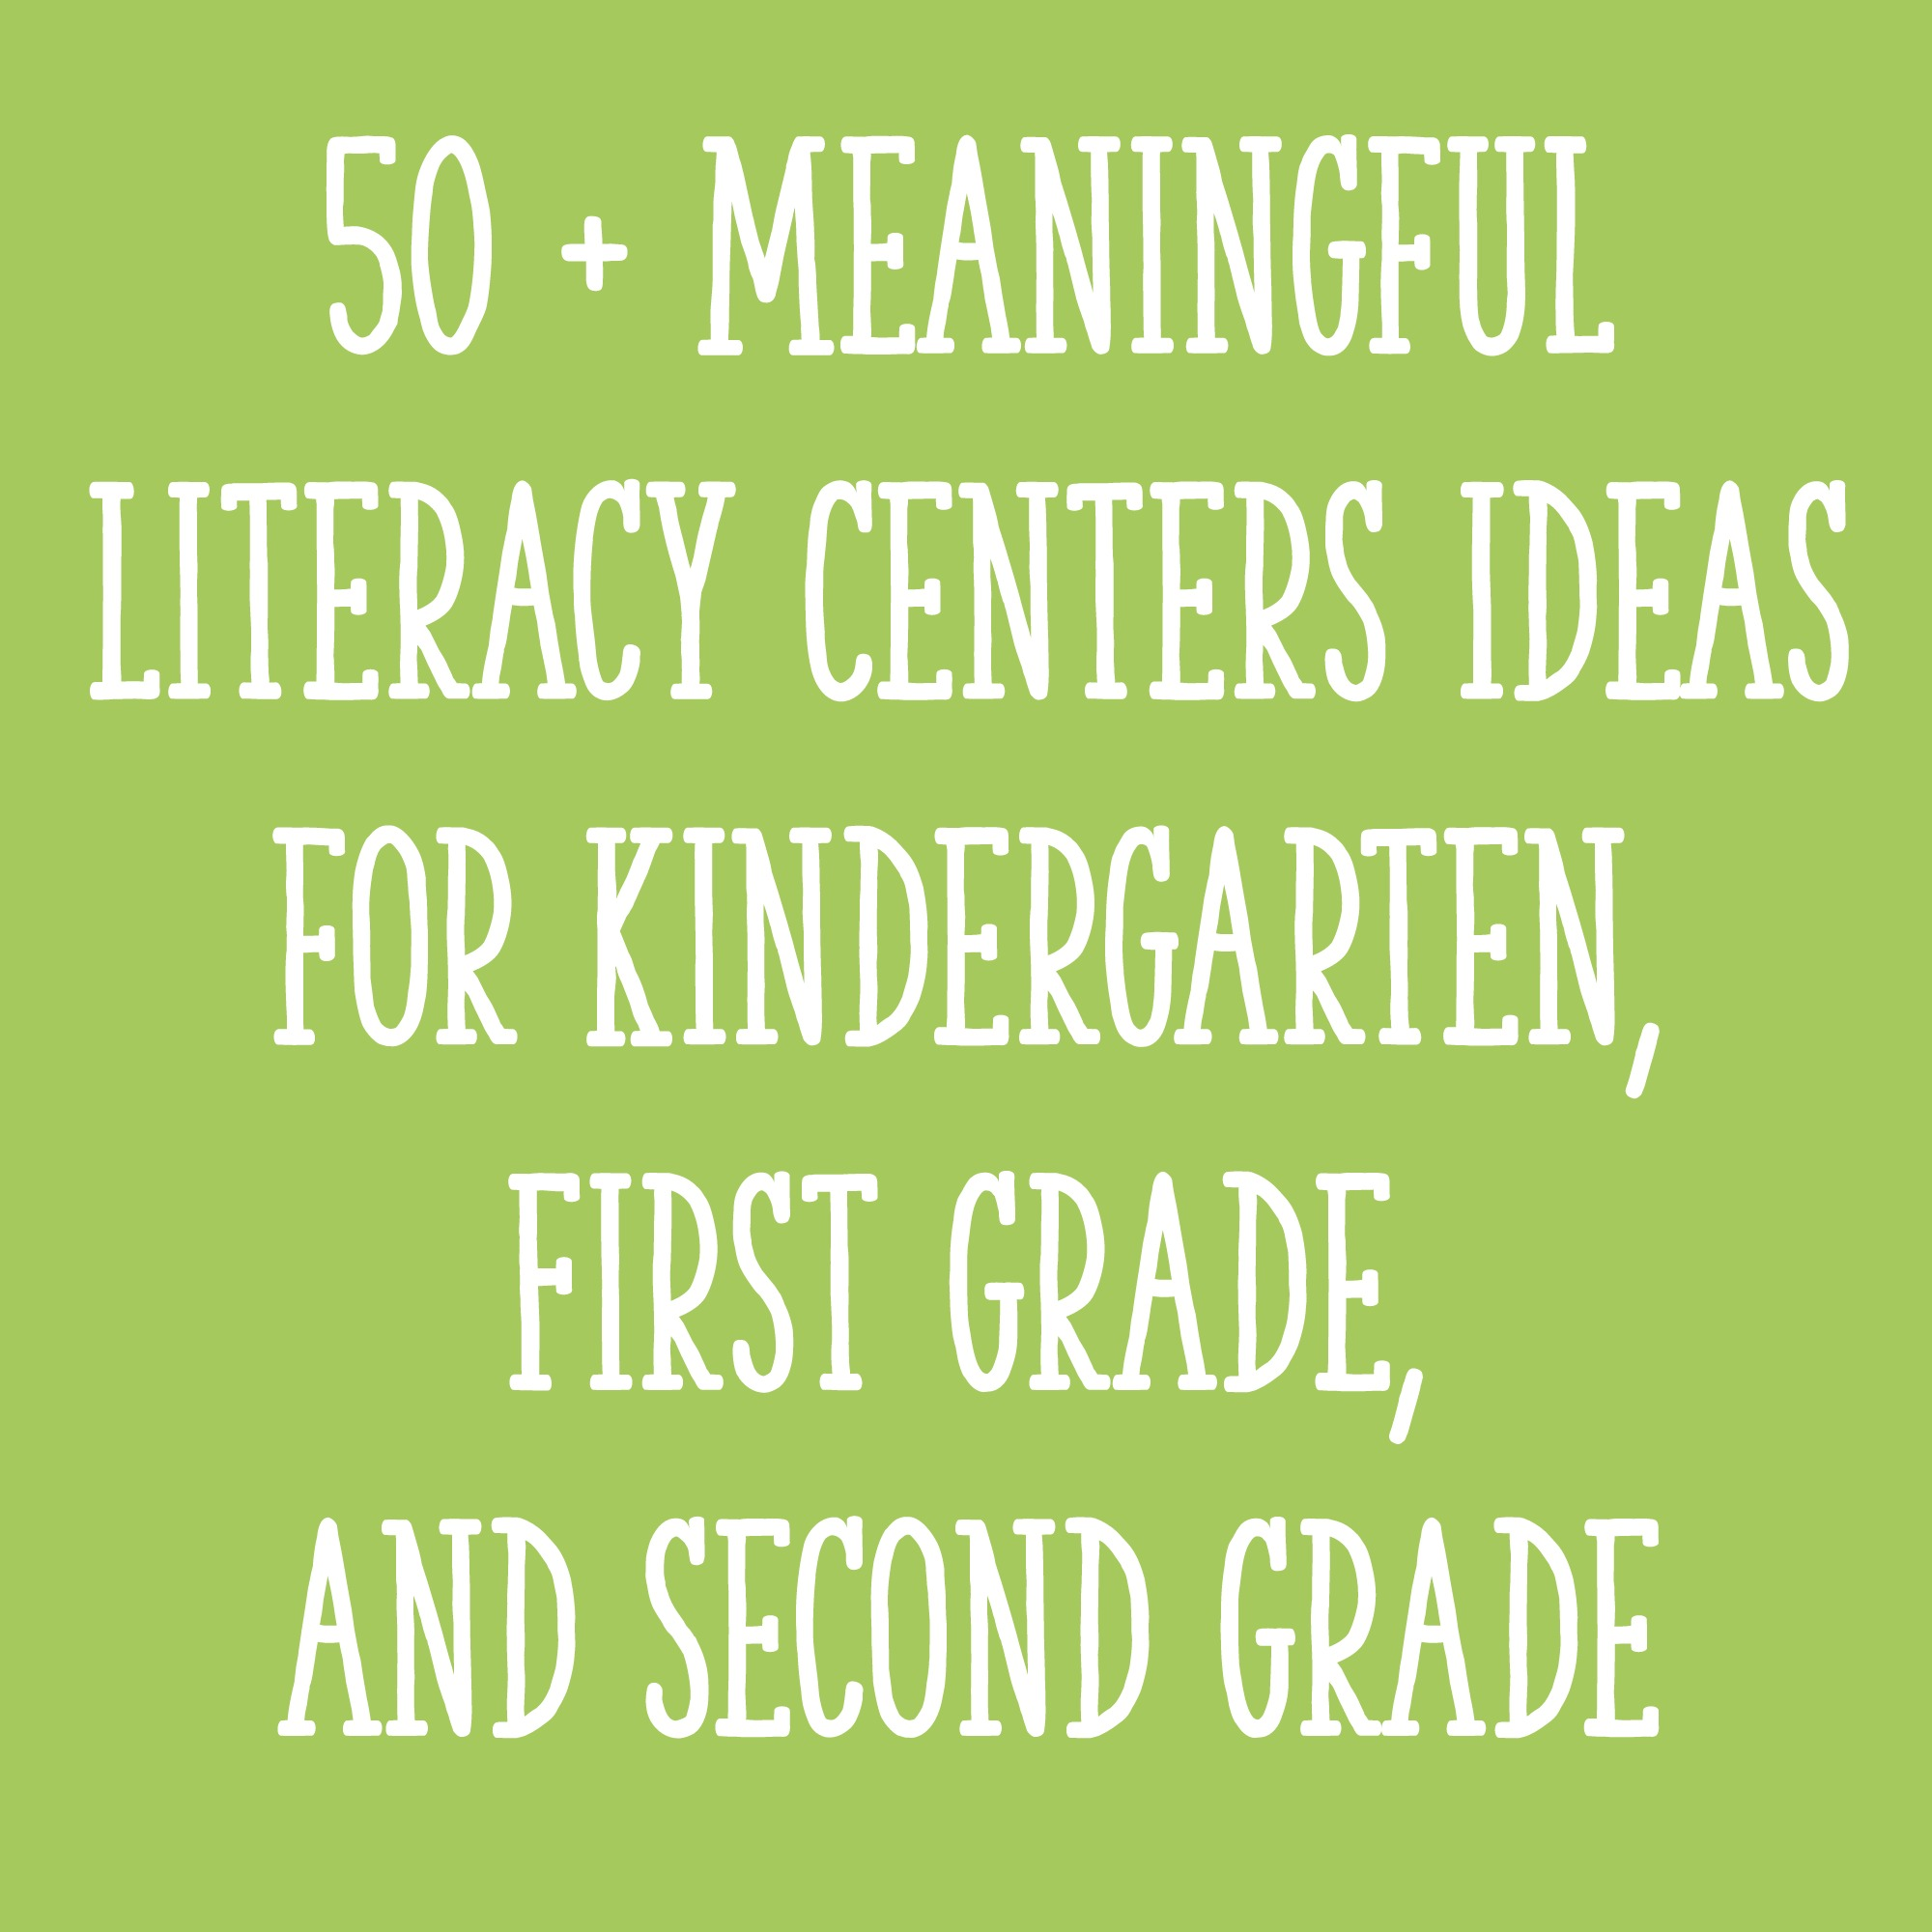 50 Meaningful Literacy Centers Ideas For Kindergarten